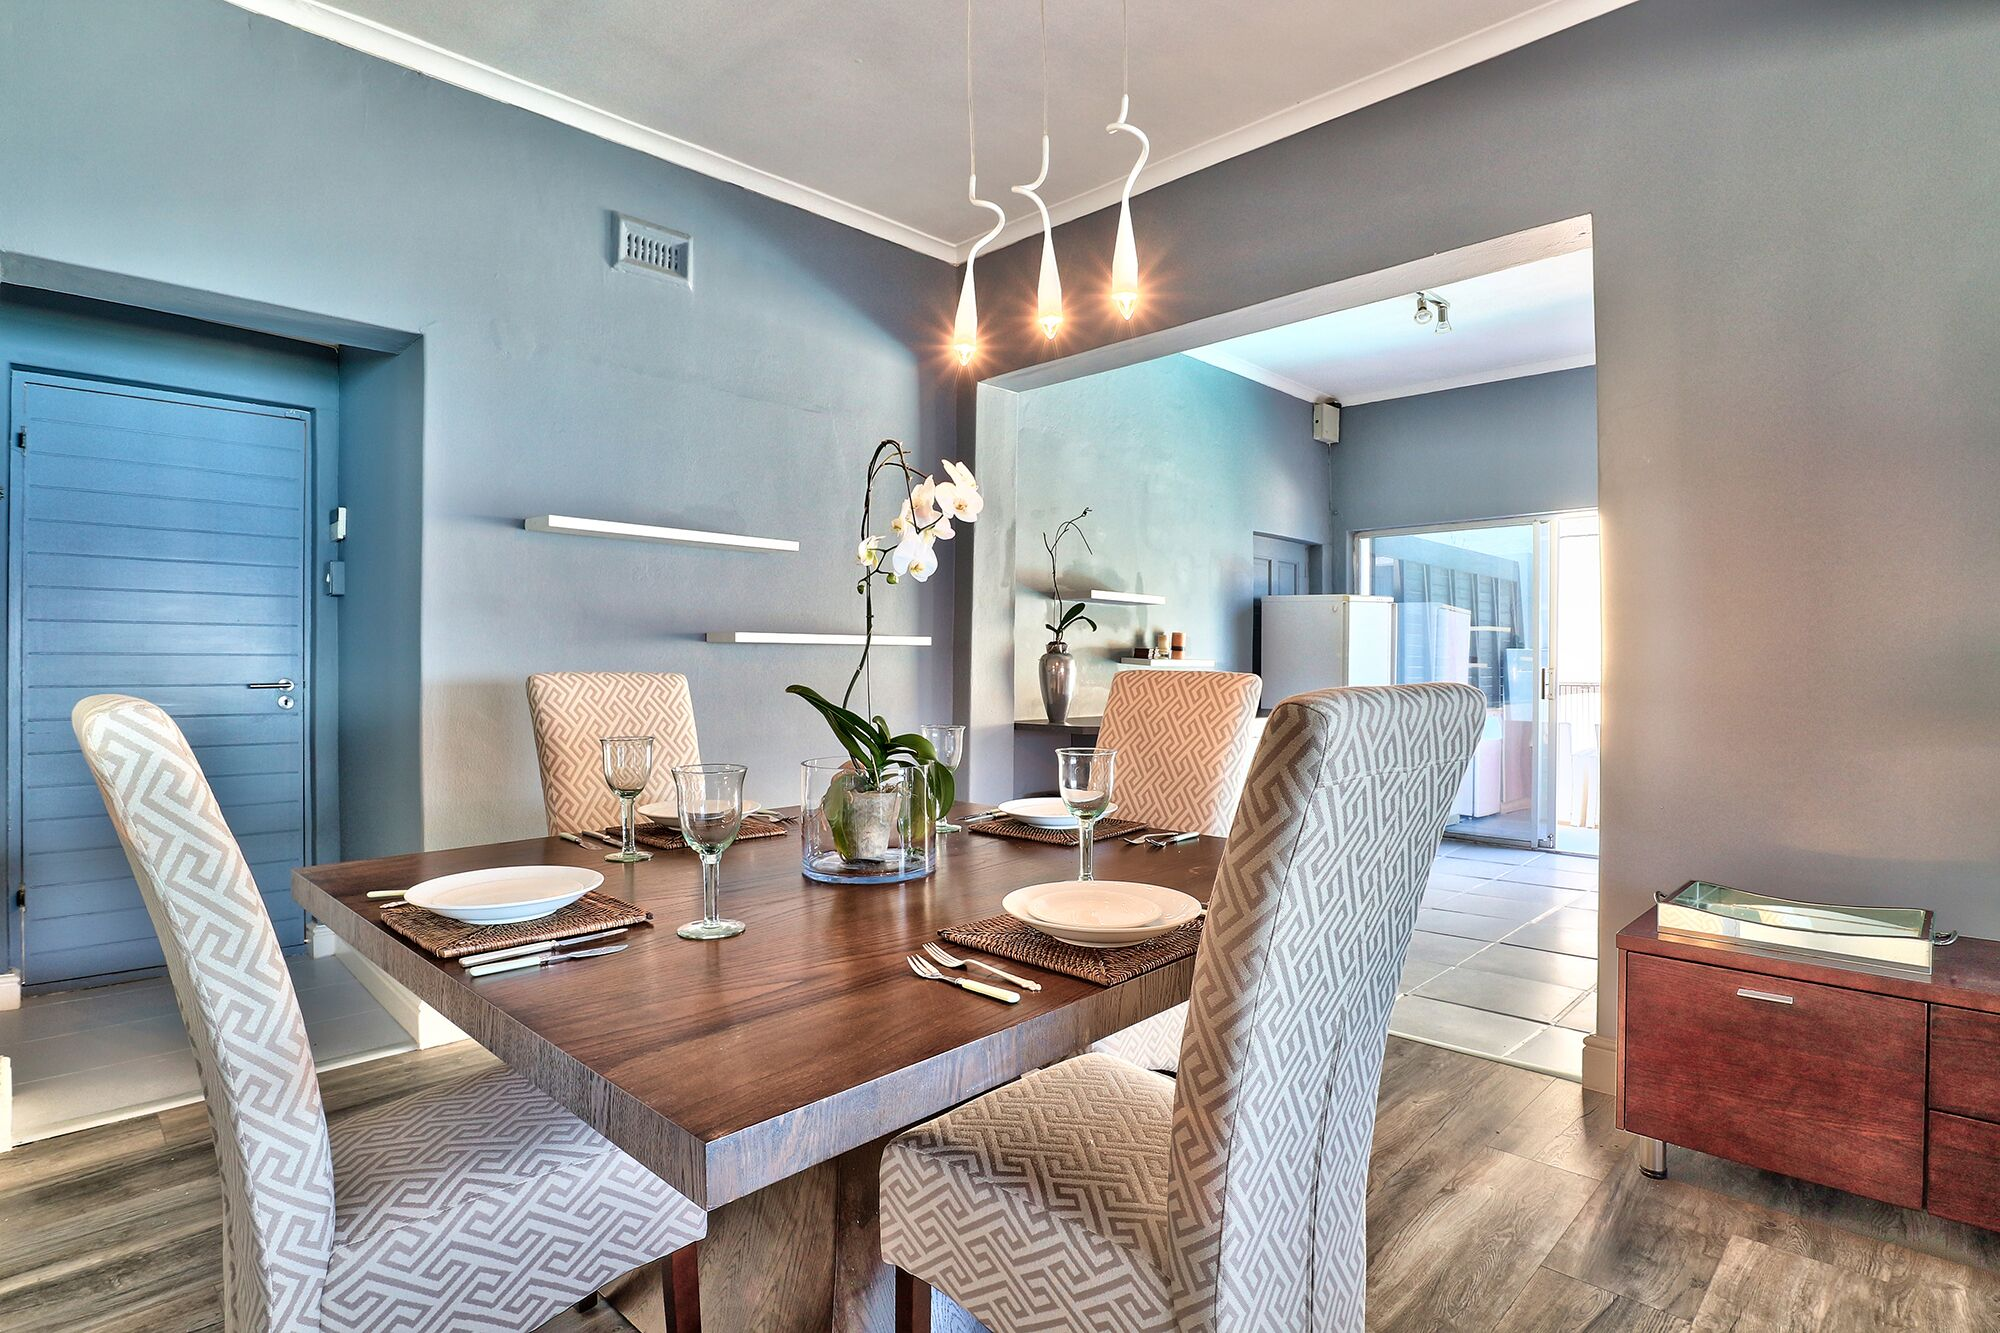 Mount pleasant apartment clifton luxury accommodation for Kitchen basins cape town